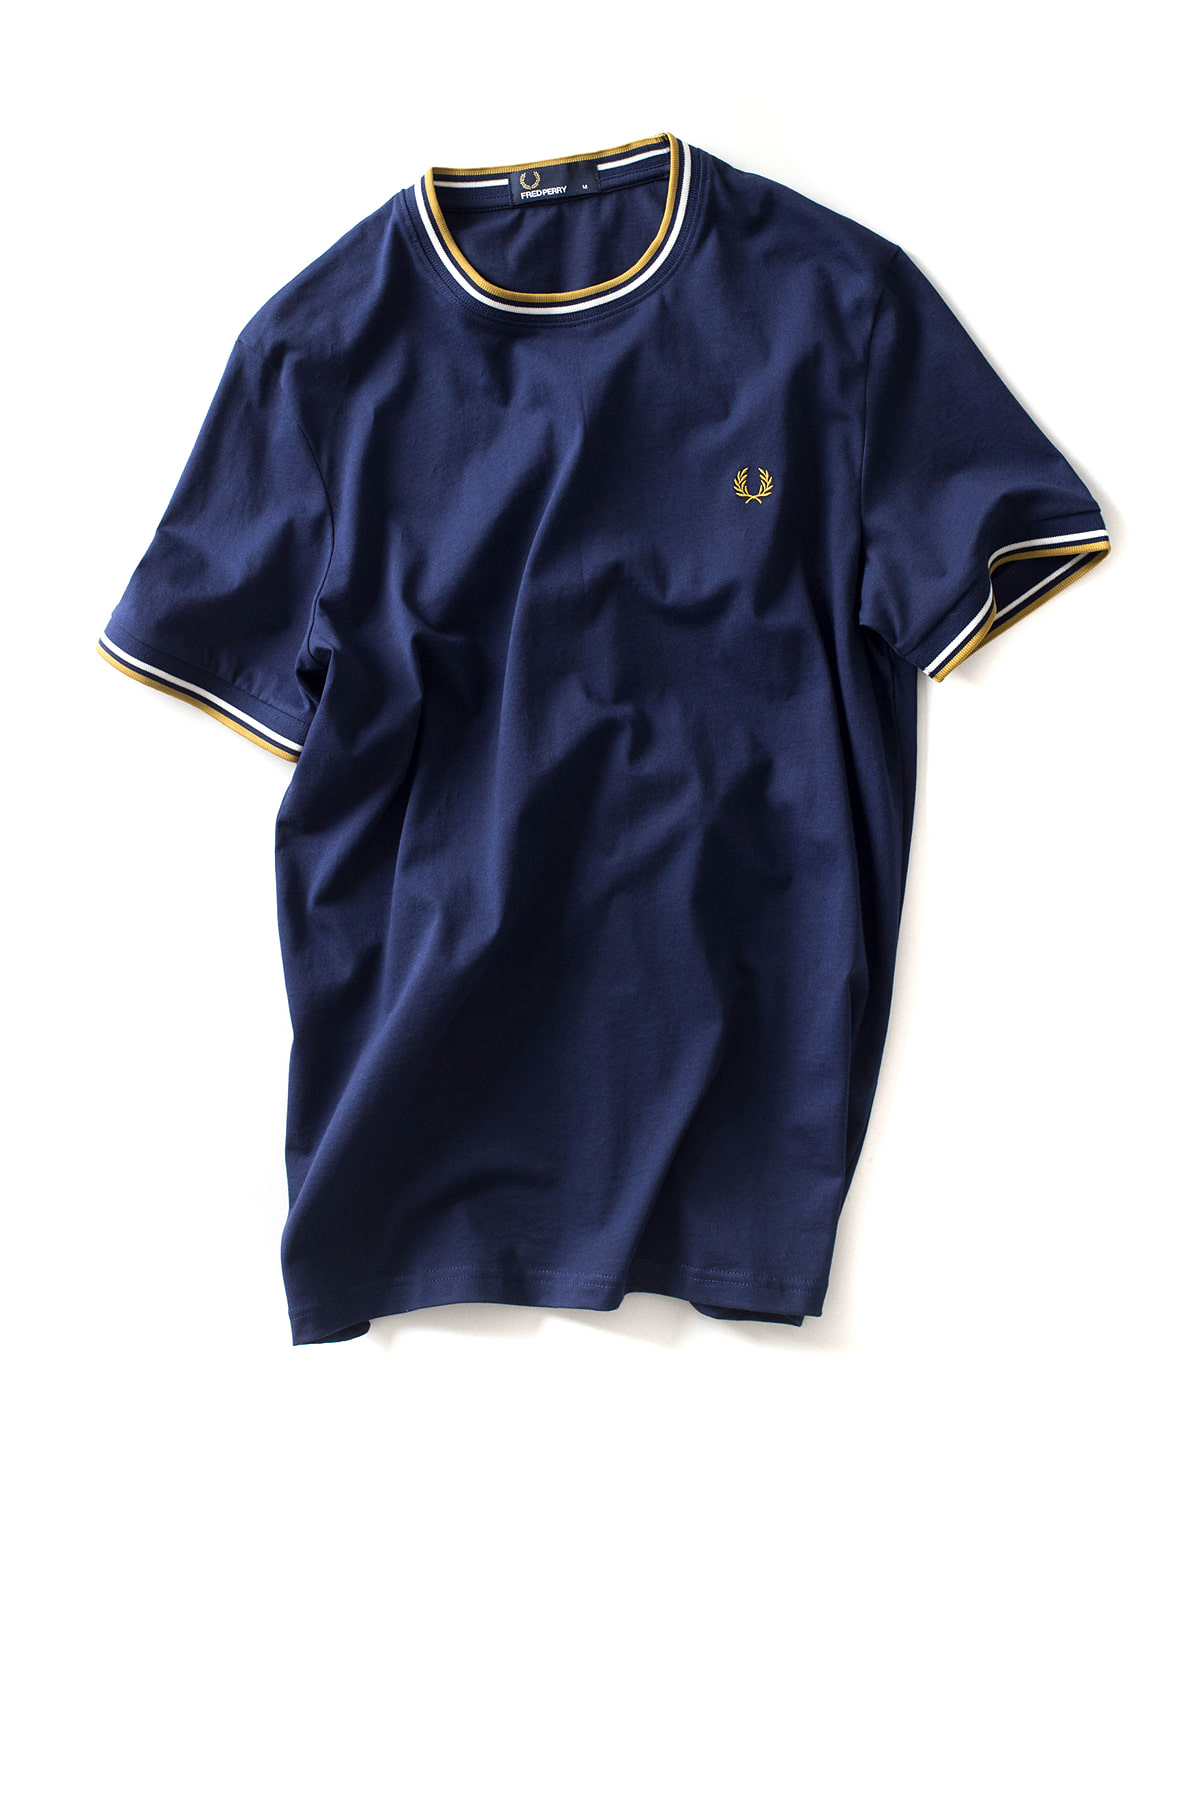 FRED PERRY : Twin Tipped T-Shirt (French Navy)